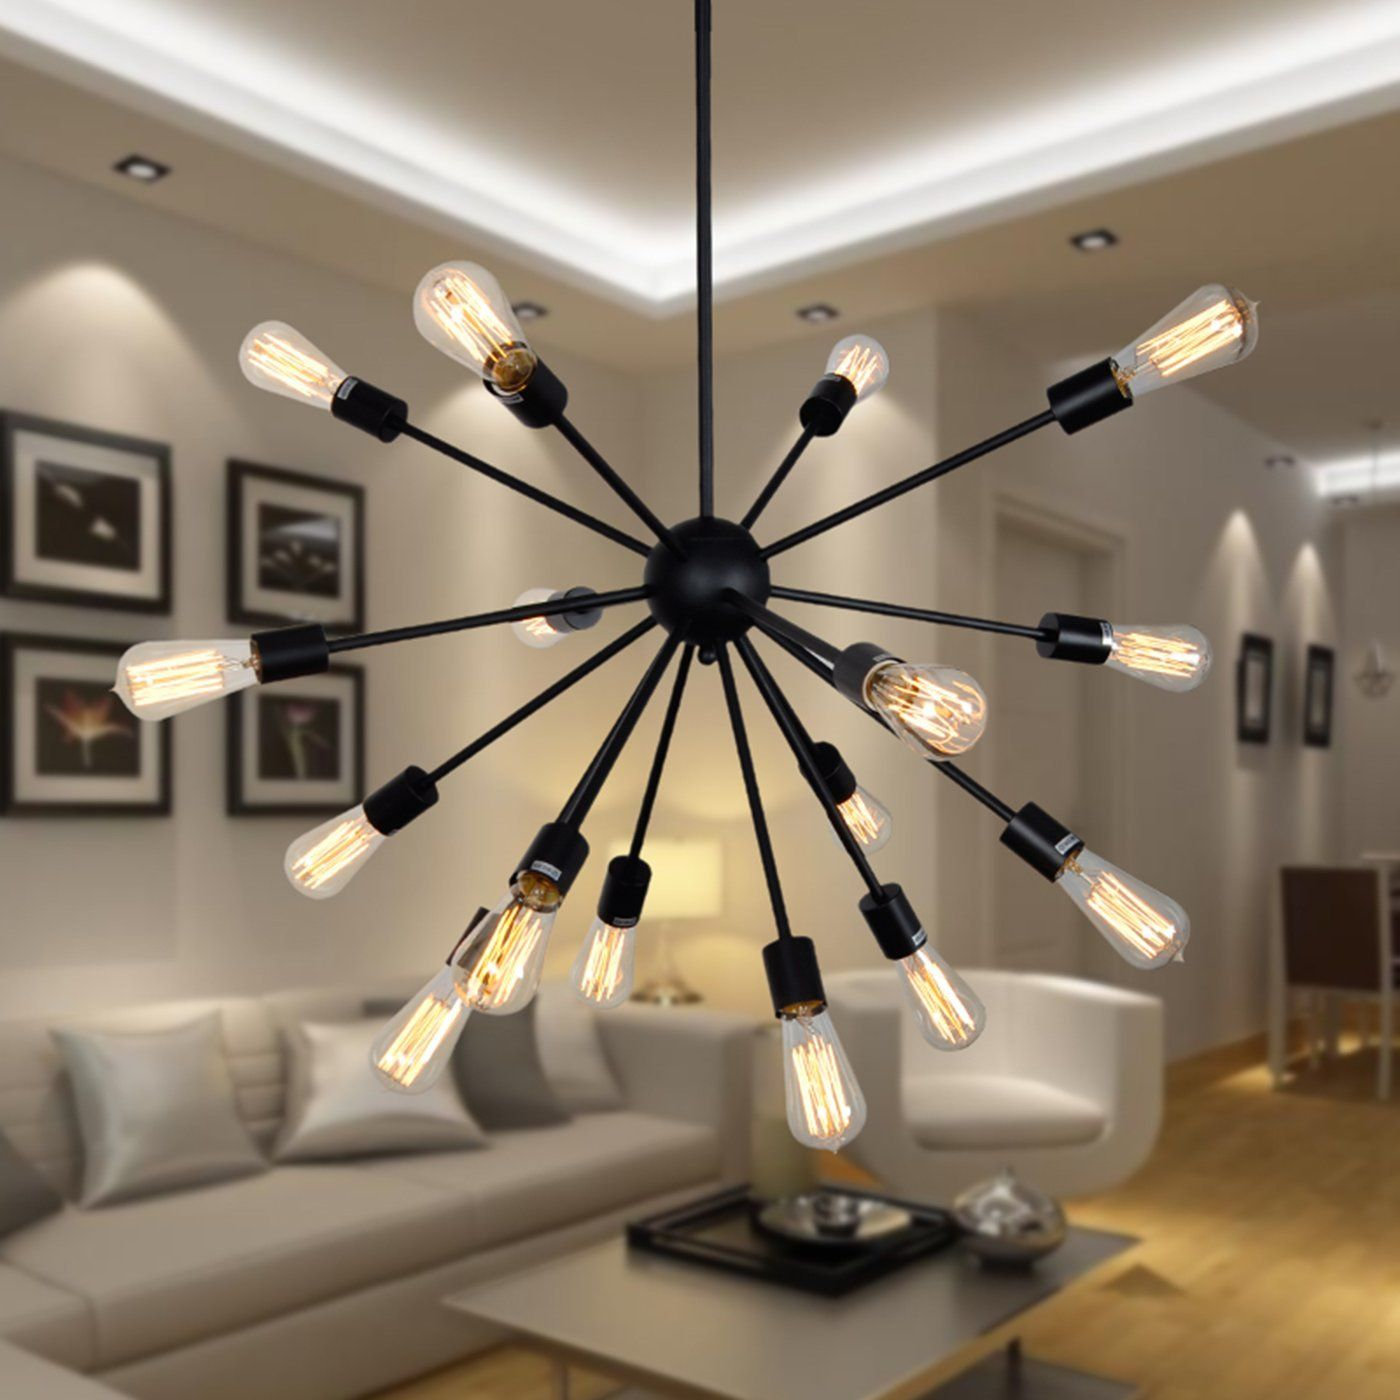 cheap pendant lighting. Cheap Pendant Light Fixture, Buy Quality Fixtures Directly From China Bulb Lamp Suppliers: Metal Arms Black Iron Pipe Erected Spark Led Lighting H